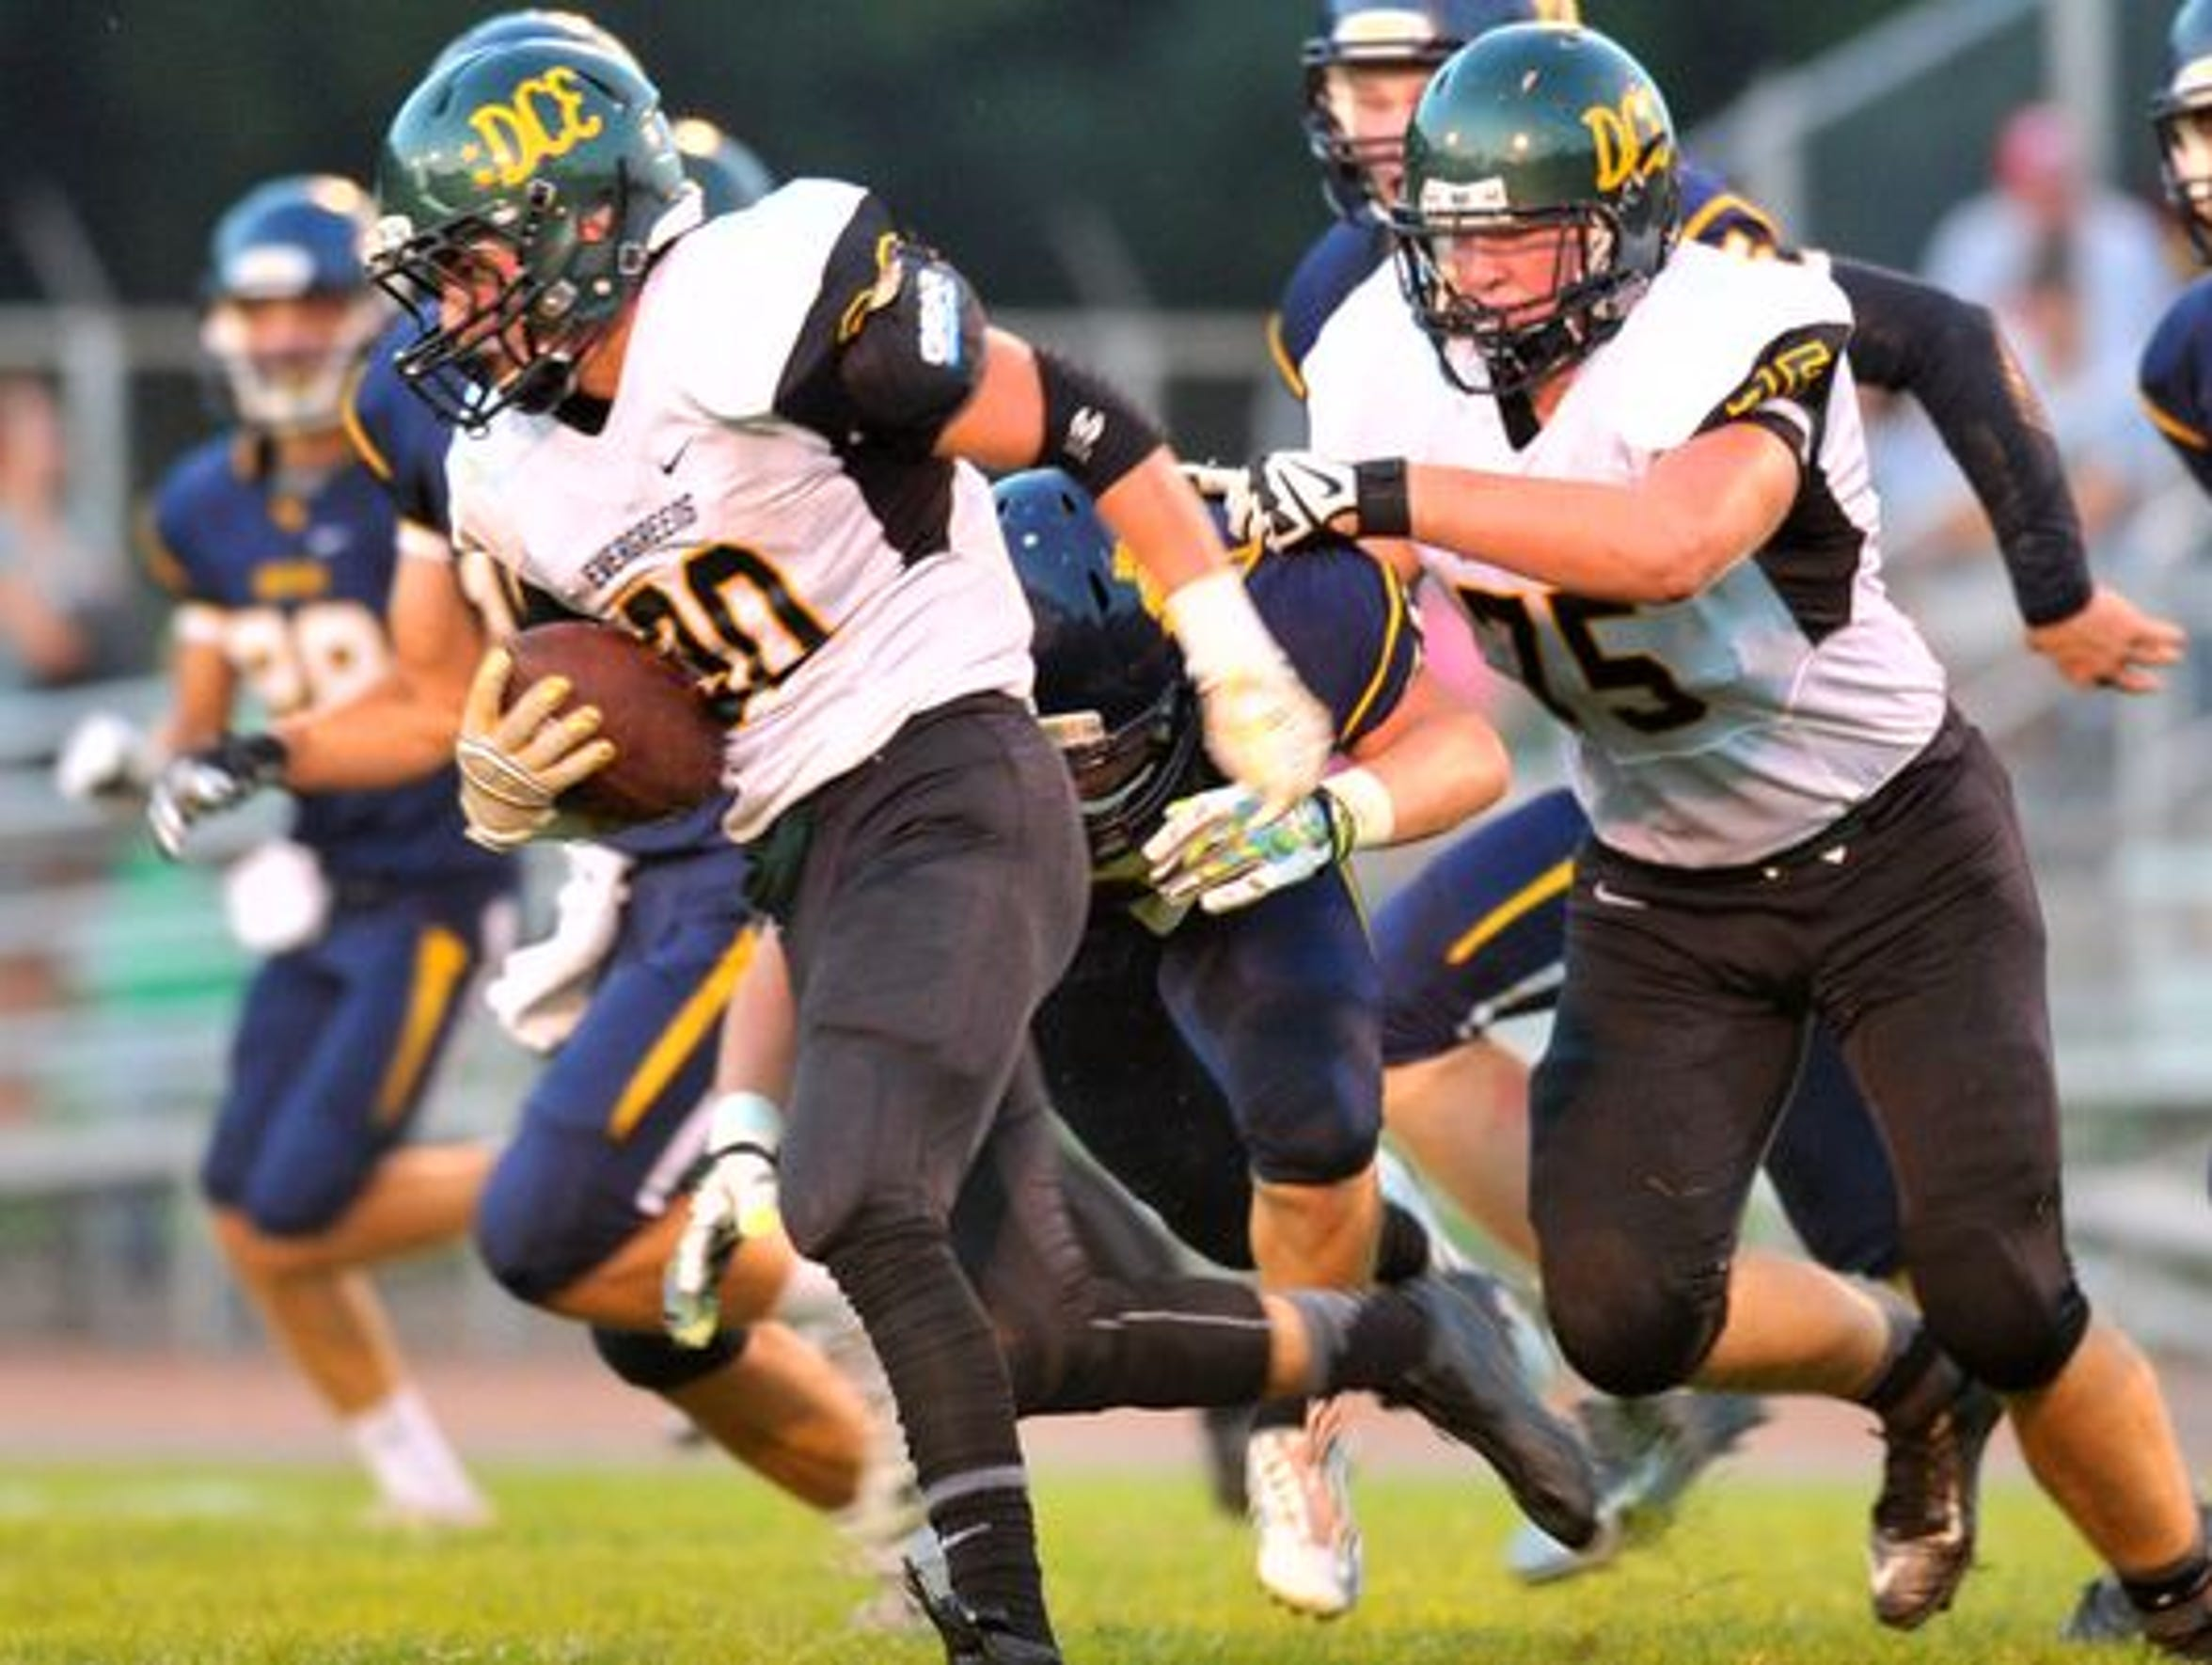 Stephen Paoli rushed for more than 1,400 yards this